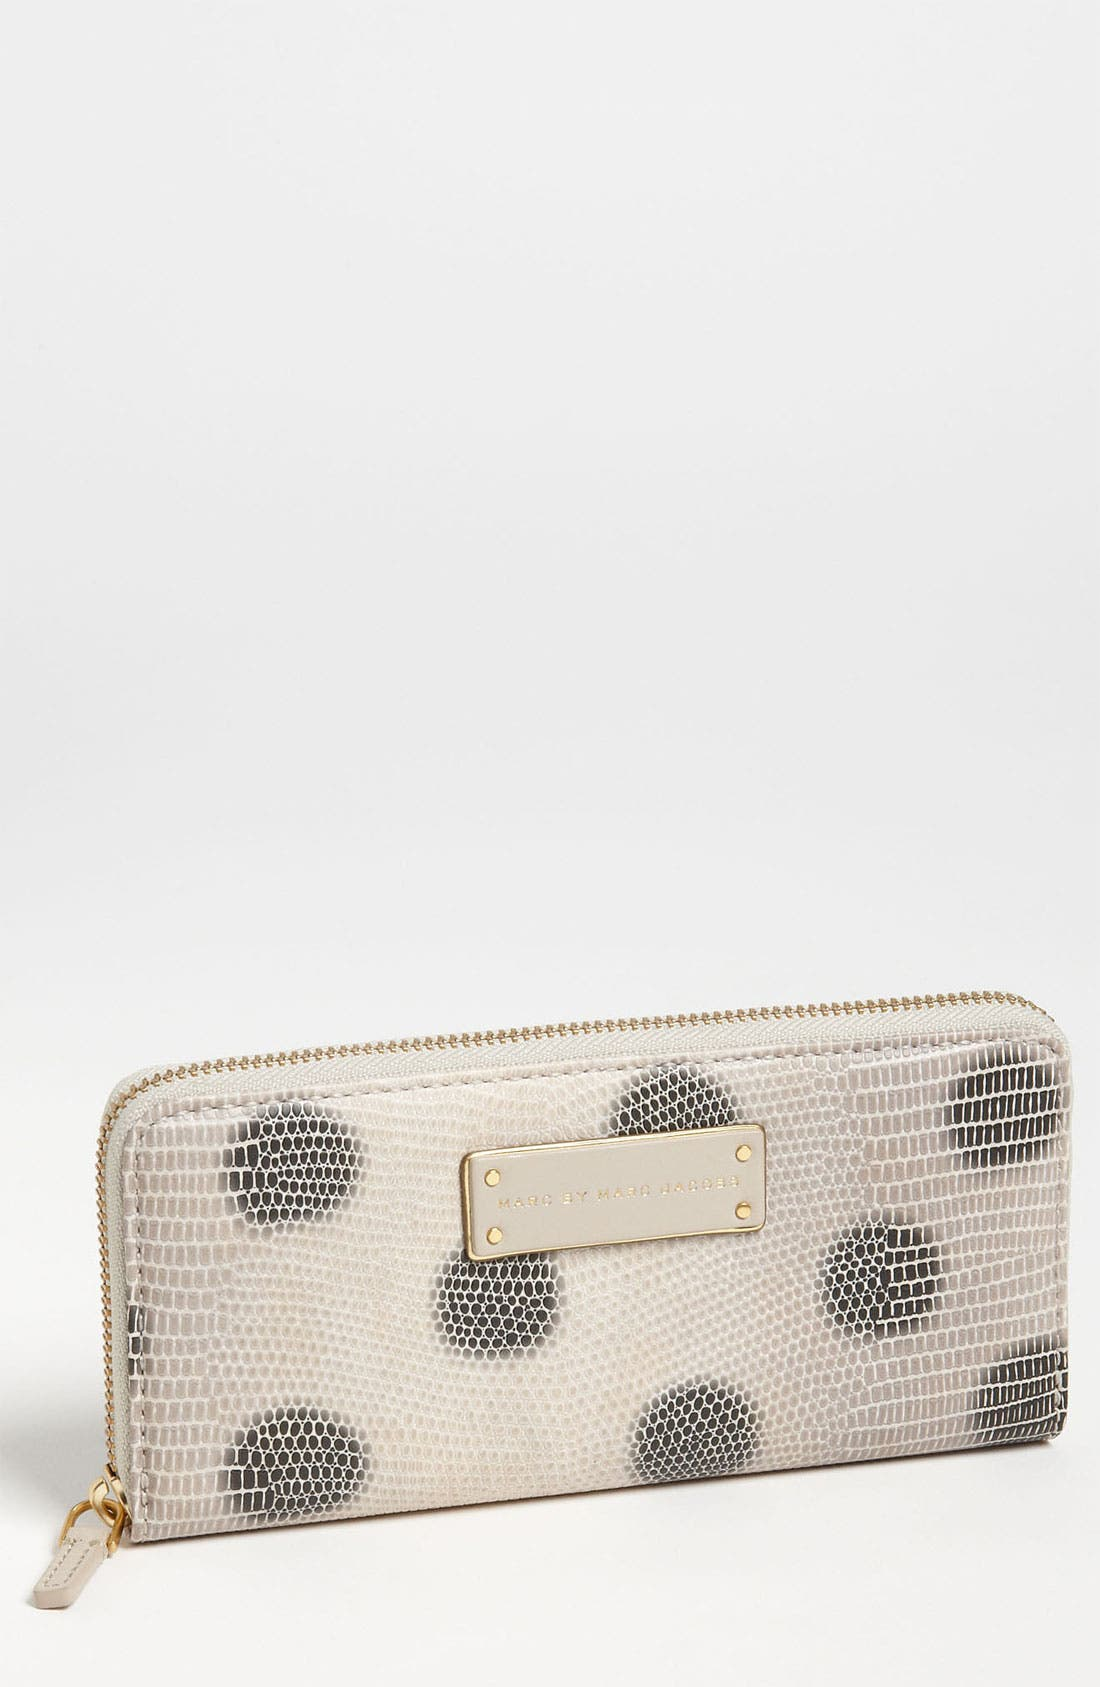 Alternate Image 1 Selected - MARC BY MARC JACOBS 'Take Me - Lizzie Spot' Embossed Zip Around Wallet